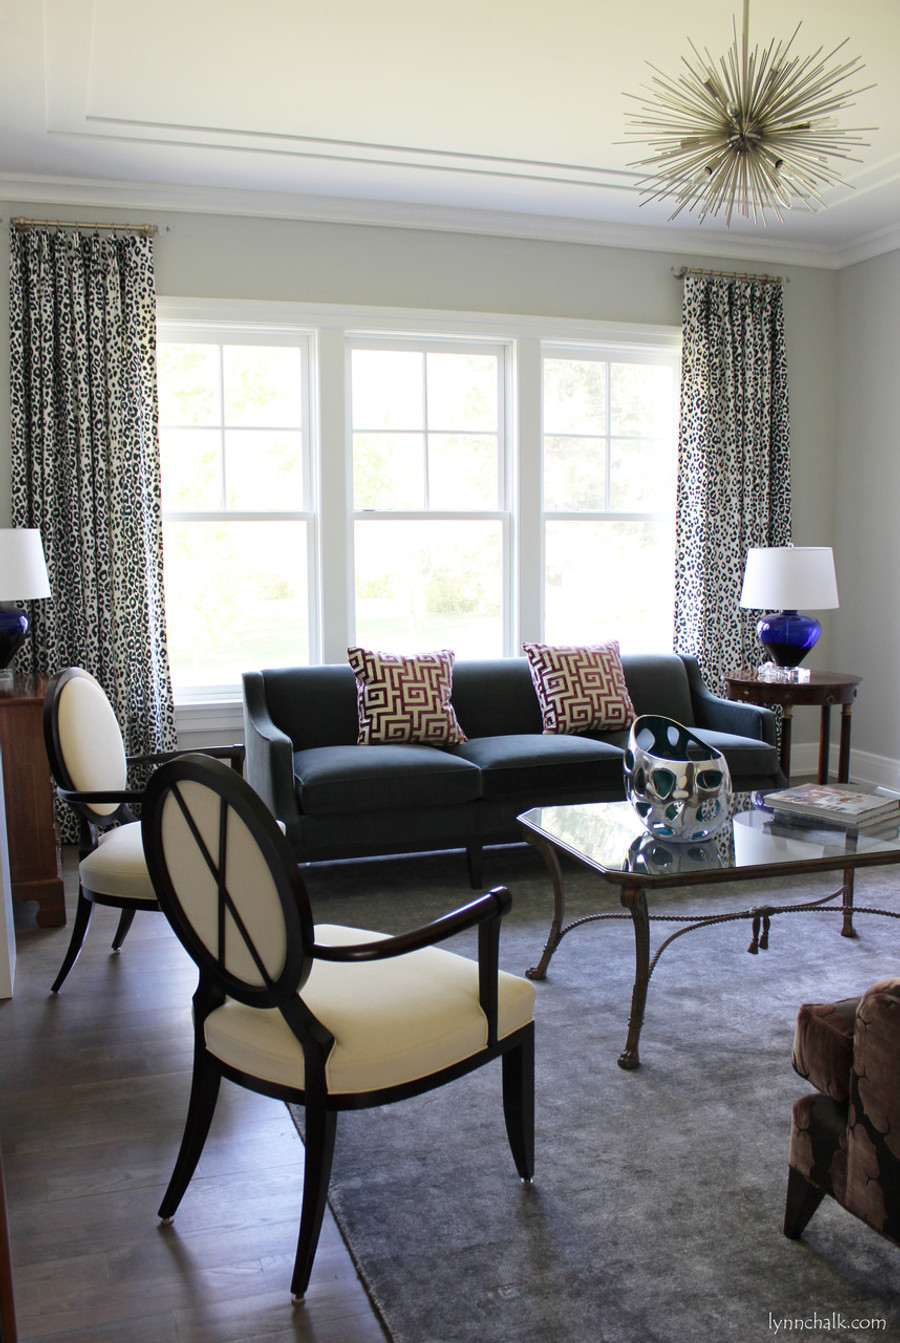 Custom Traditional Pinch Pleated Drapes by Lynn Chalk in Schumacher Iconic Leopard in Ink